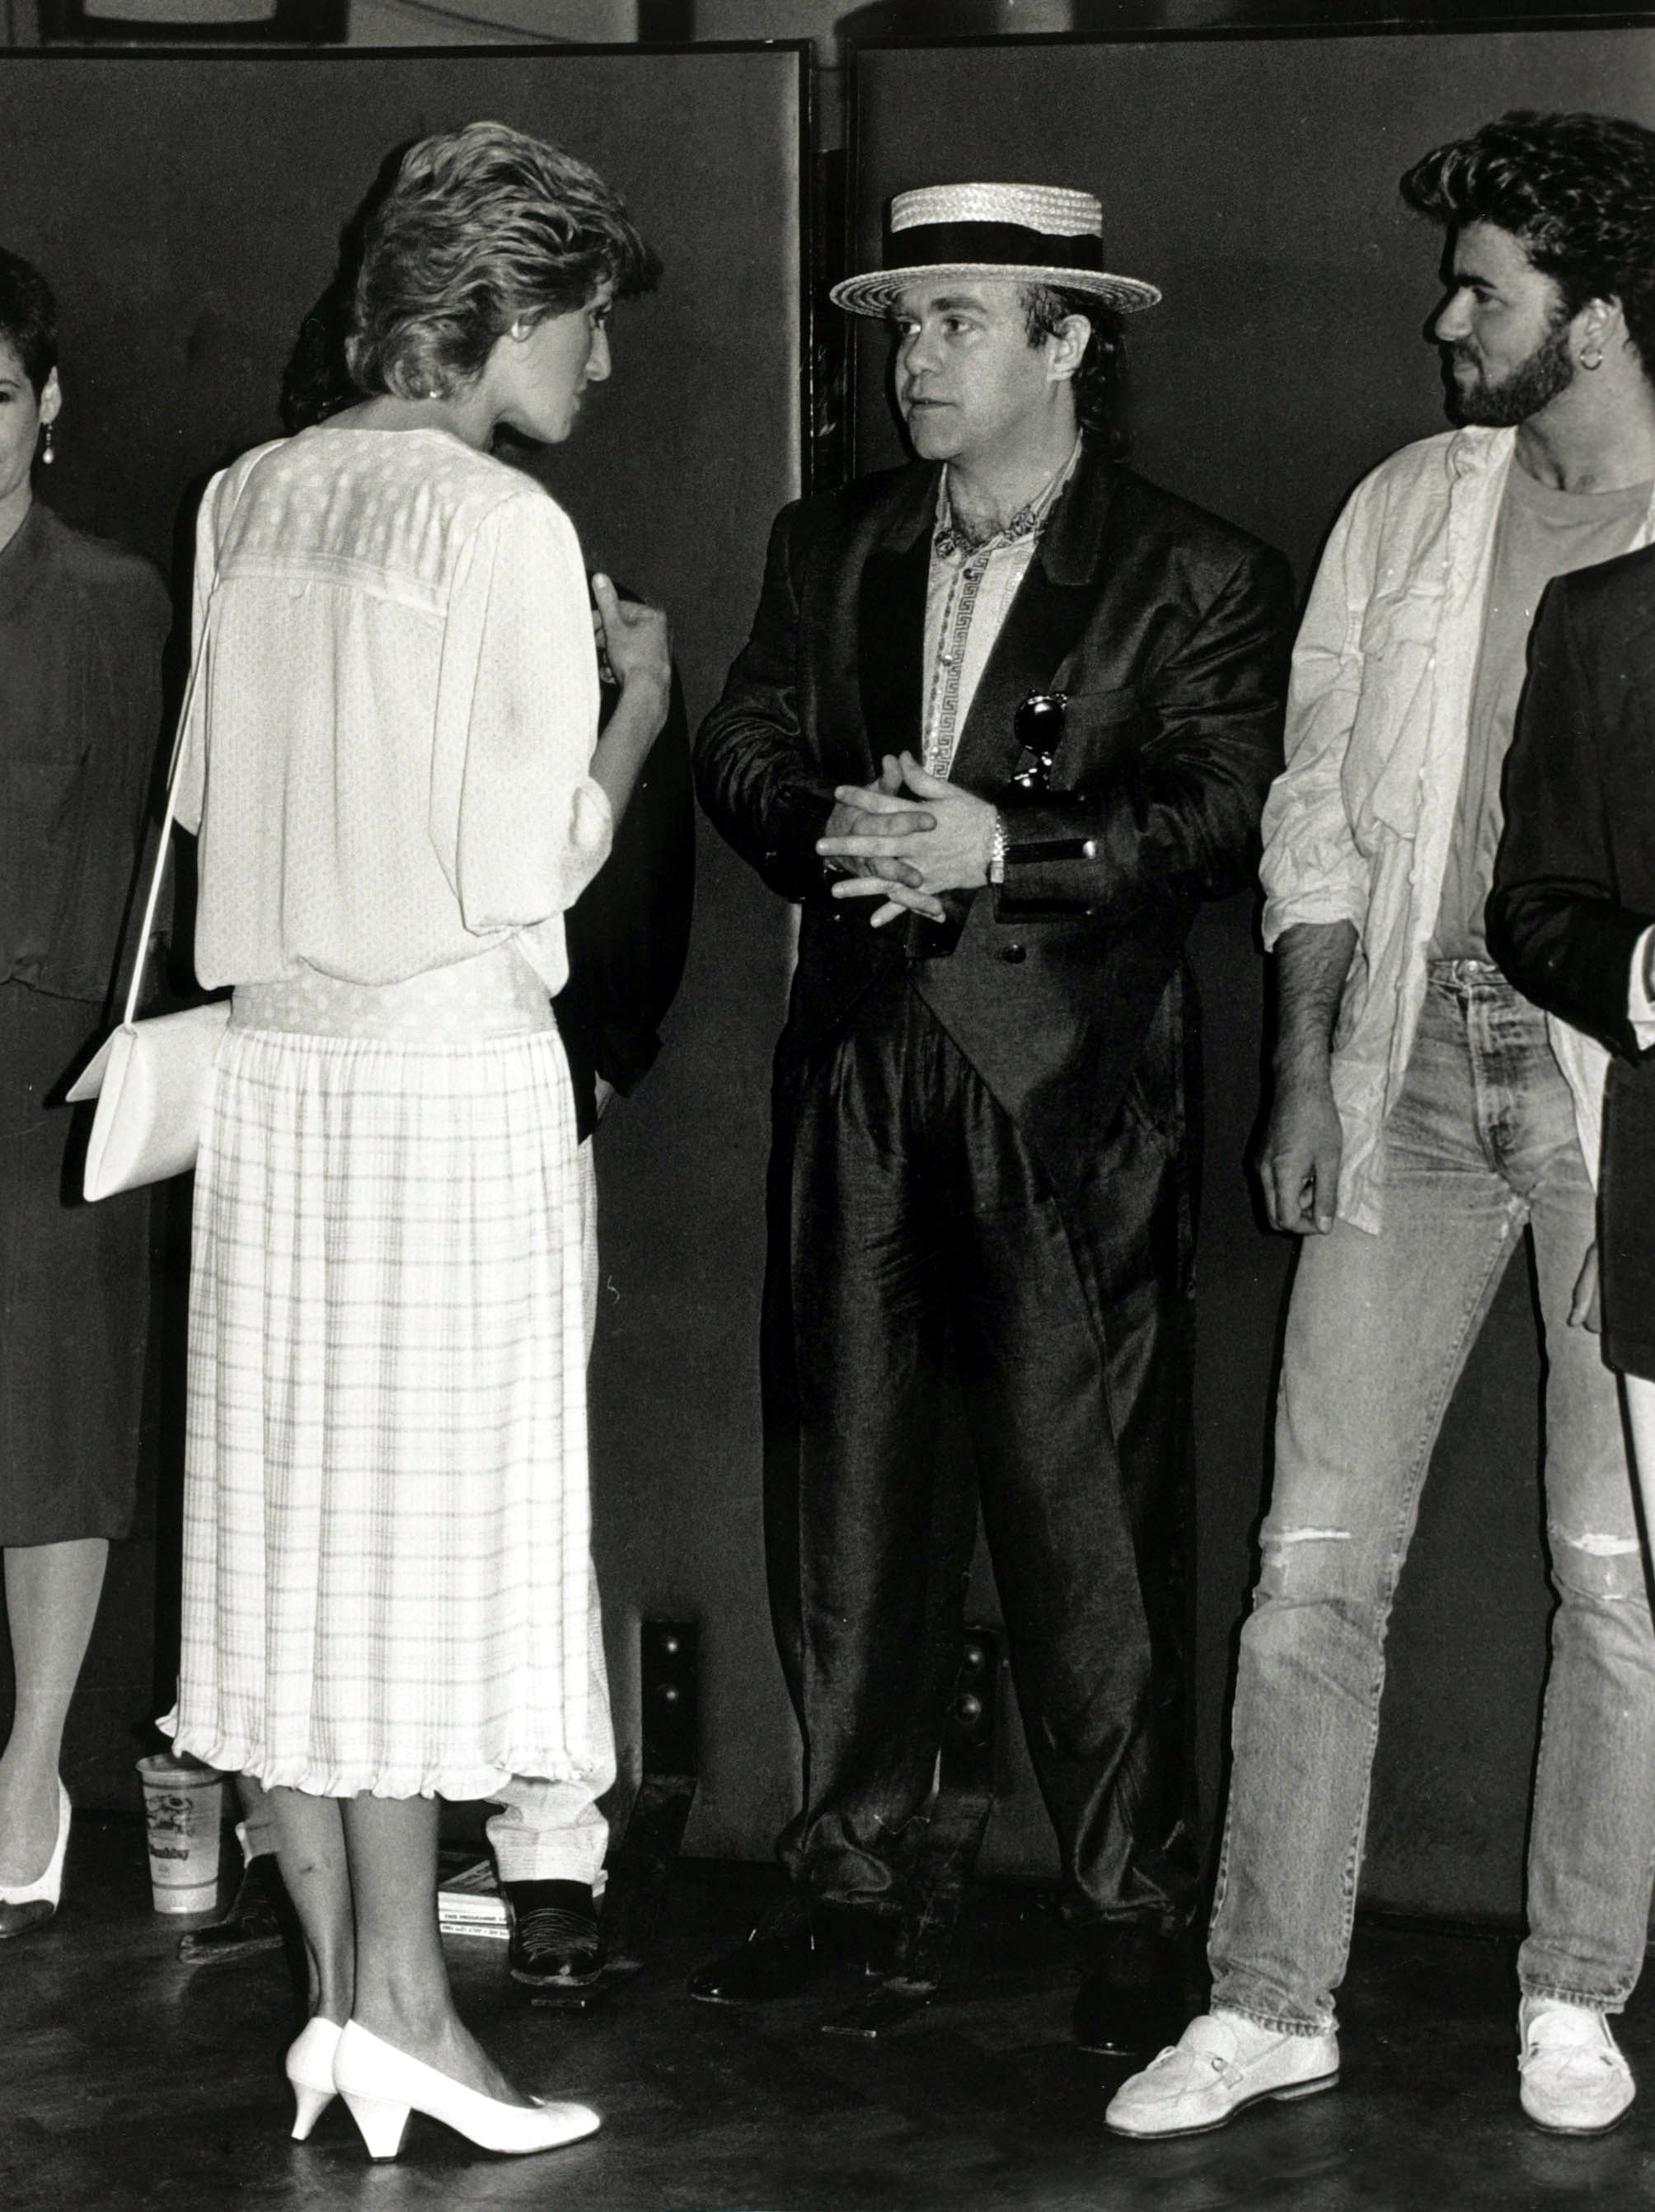 British Royalty, Music, pic: 13th July 1985, Diana, Princess of Wales pictured chatting to musicians Elton John (centre) and George Michael at the